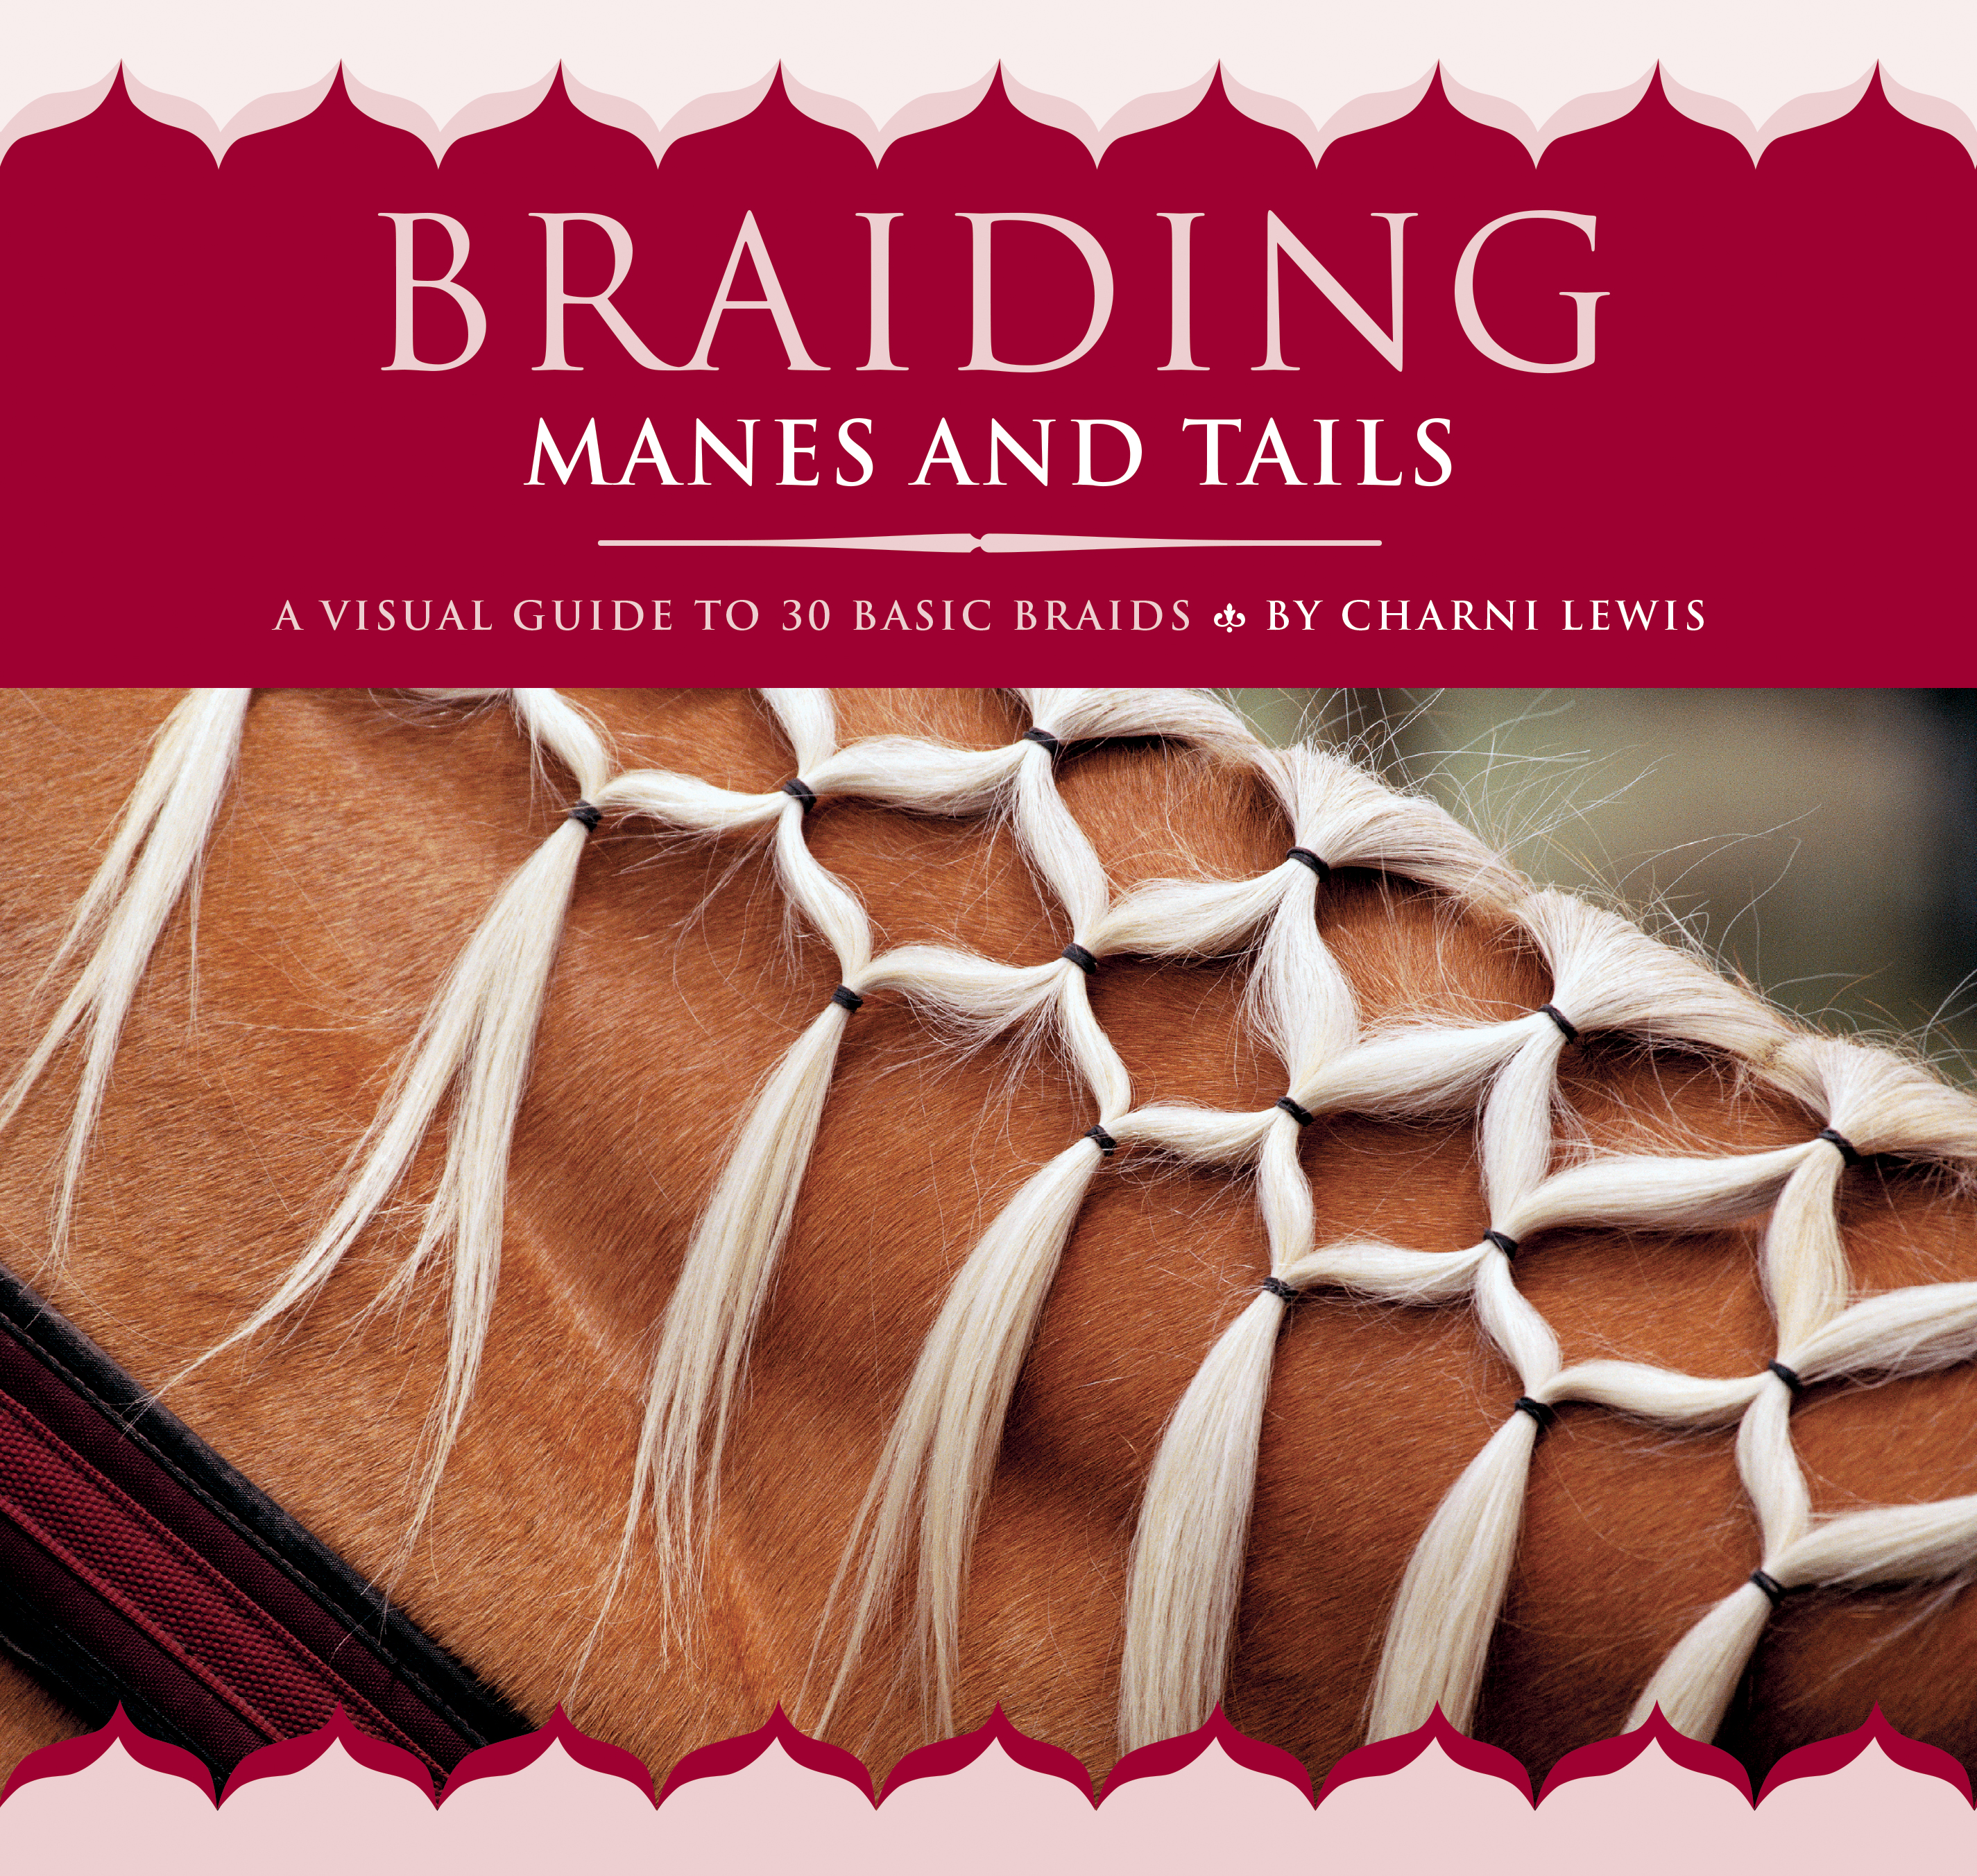 Braiding Manes and Tails A Visual Guide to 30 Basic Braids - Charni Lewis